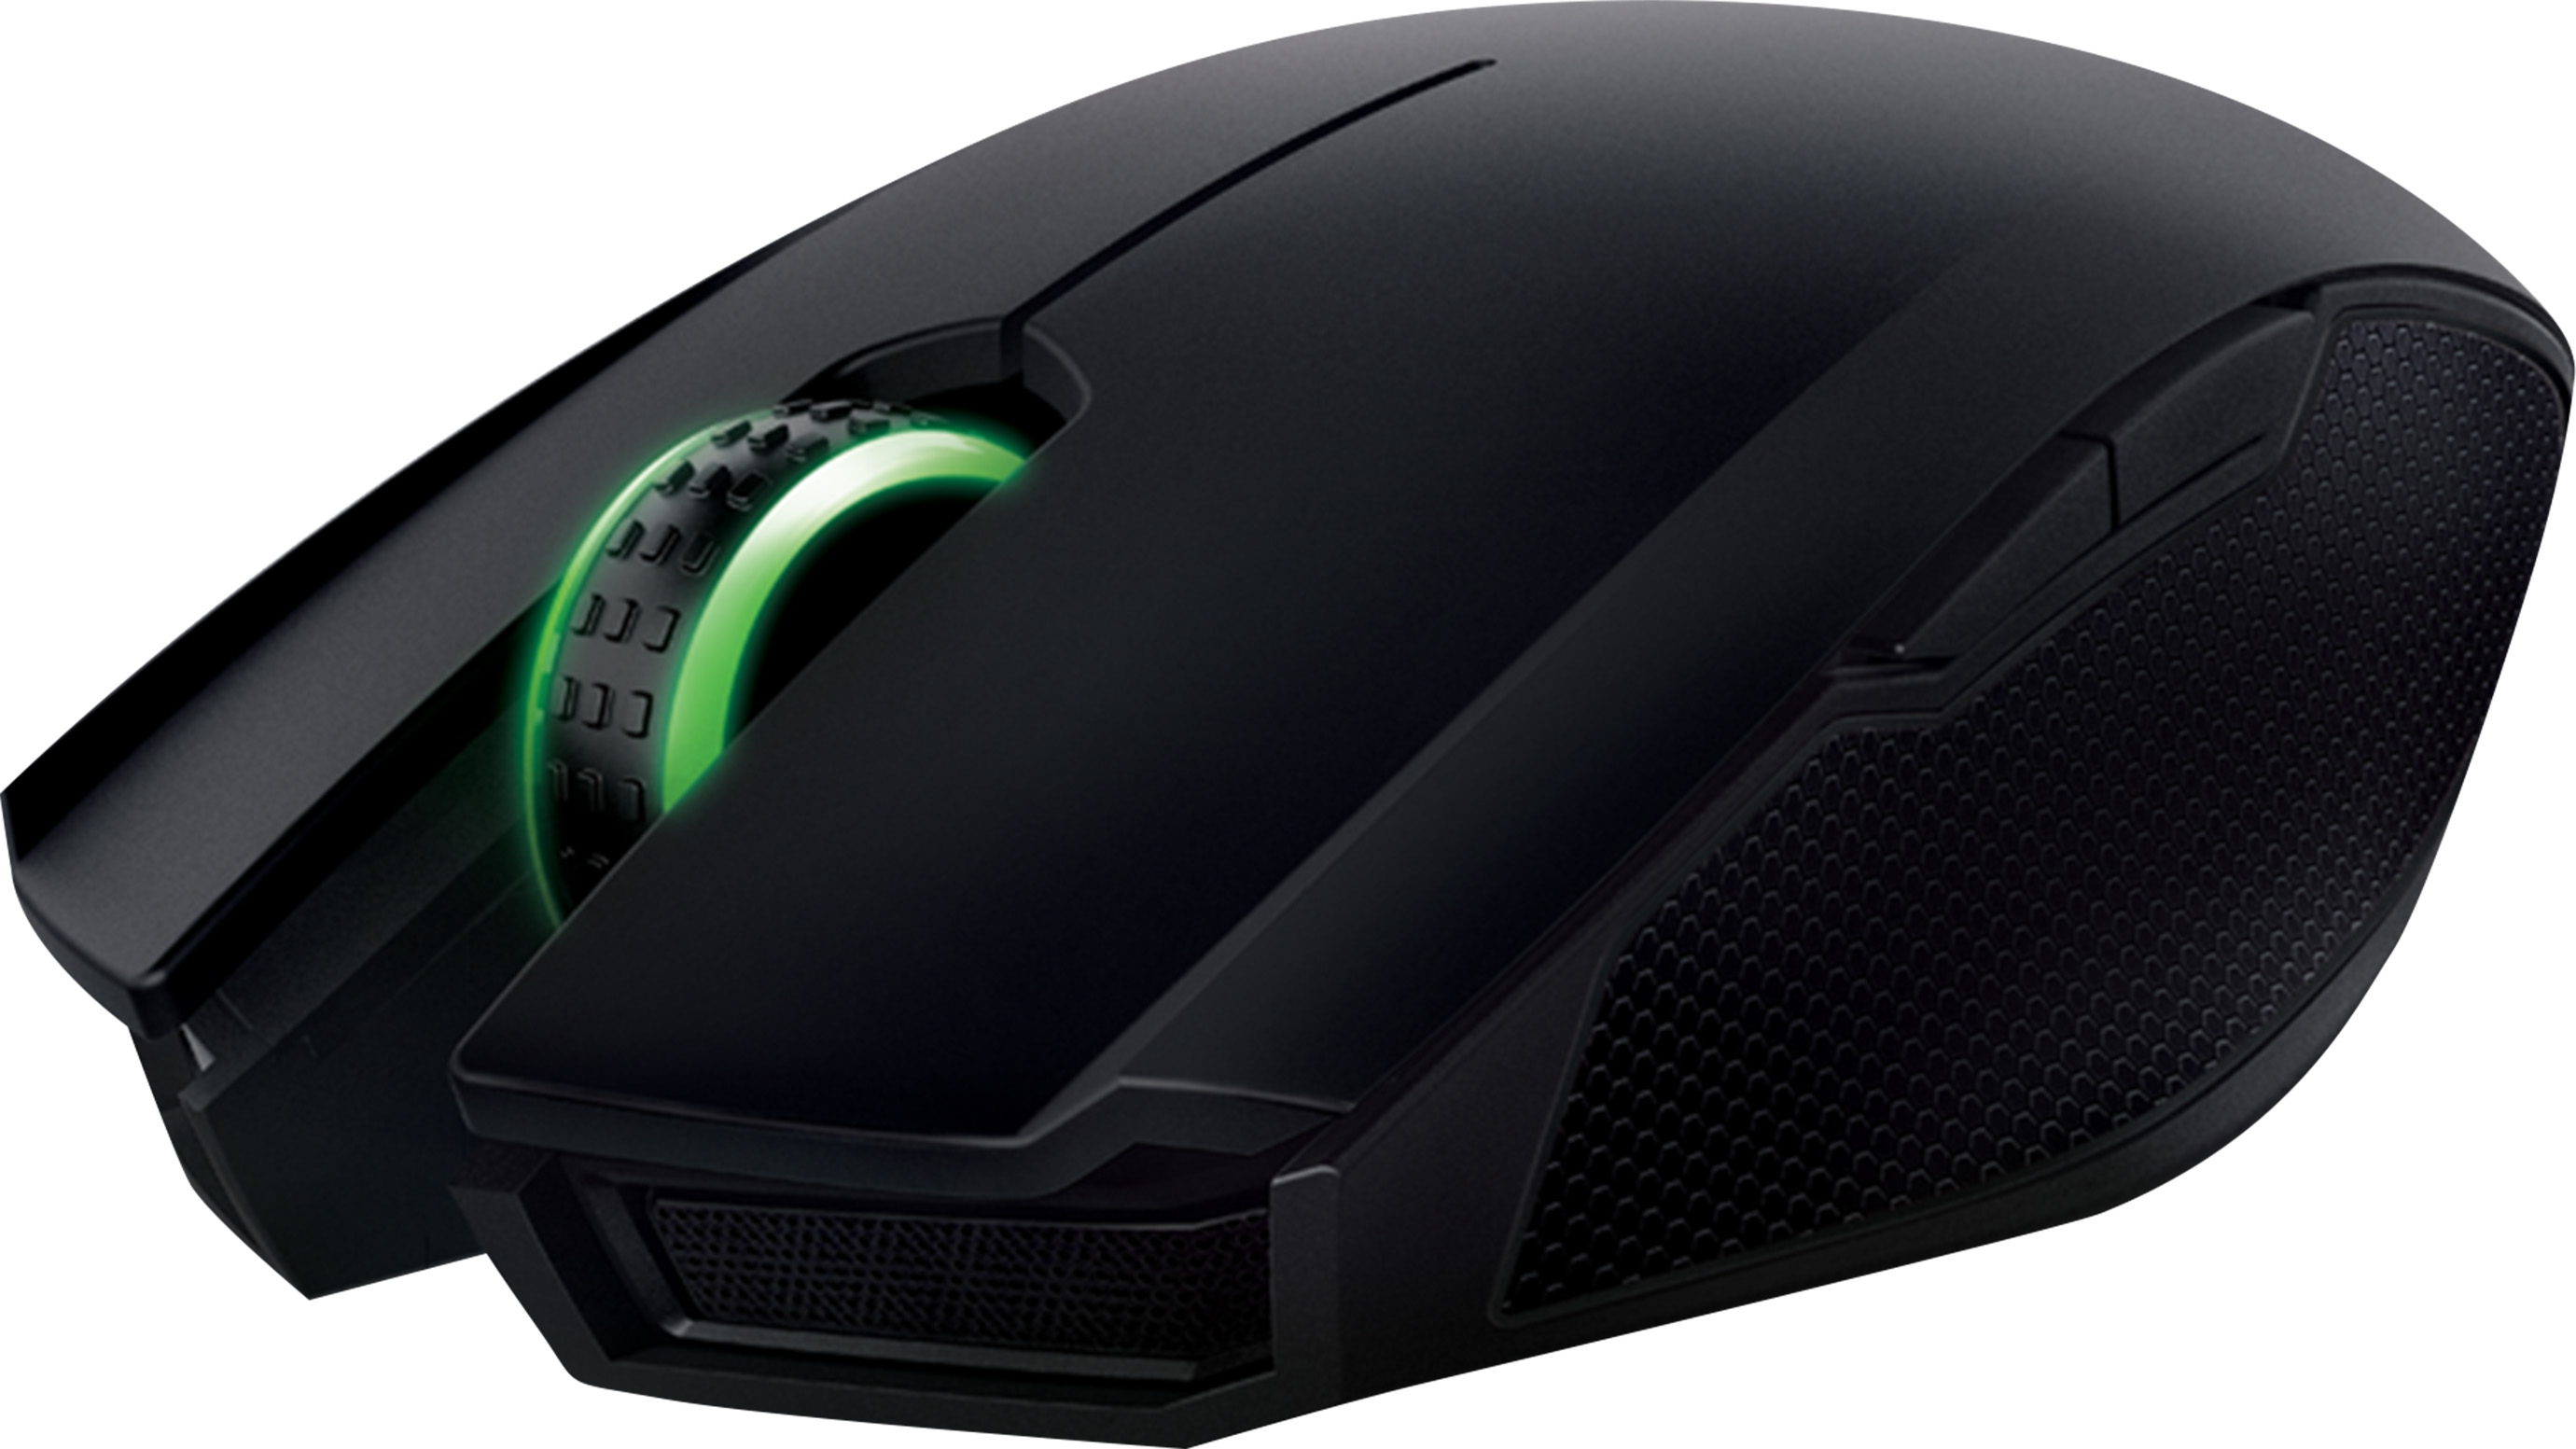 Razer Orochi Gaming Mouse Deal